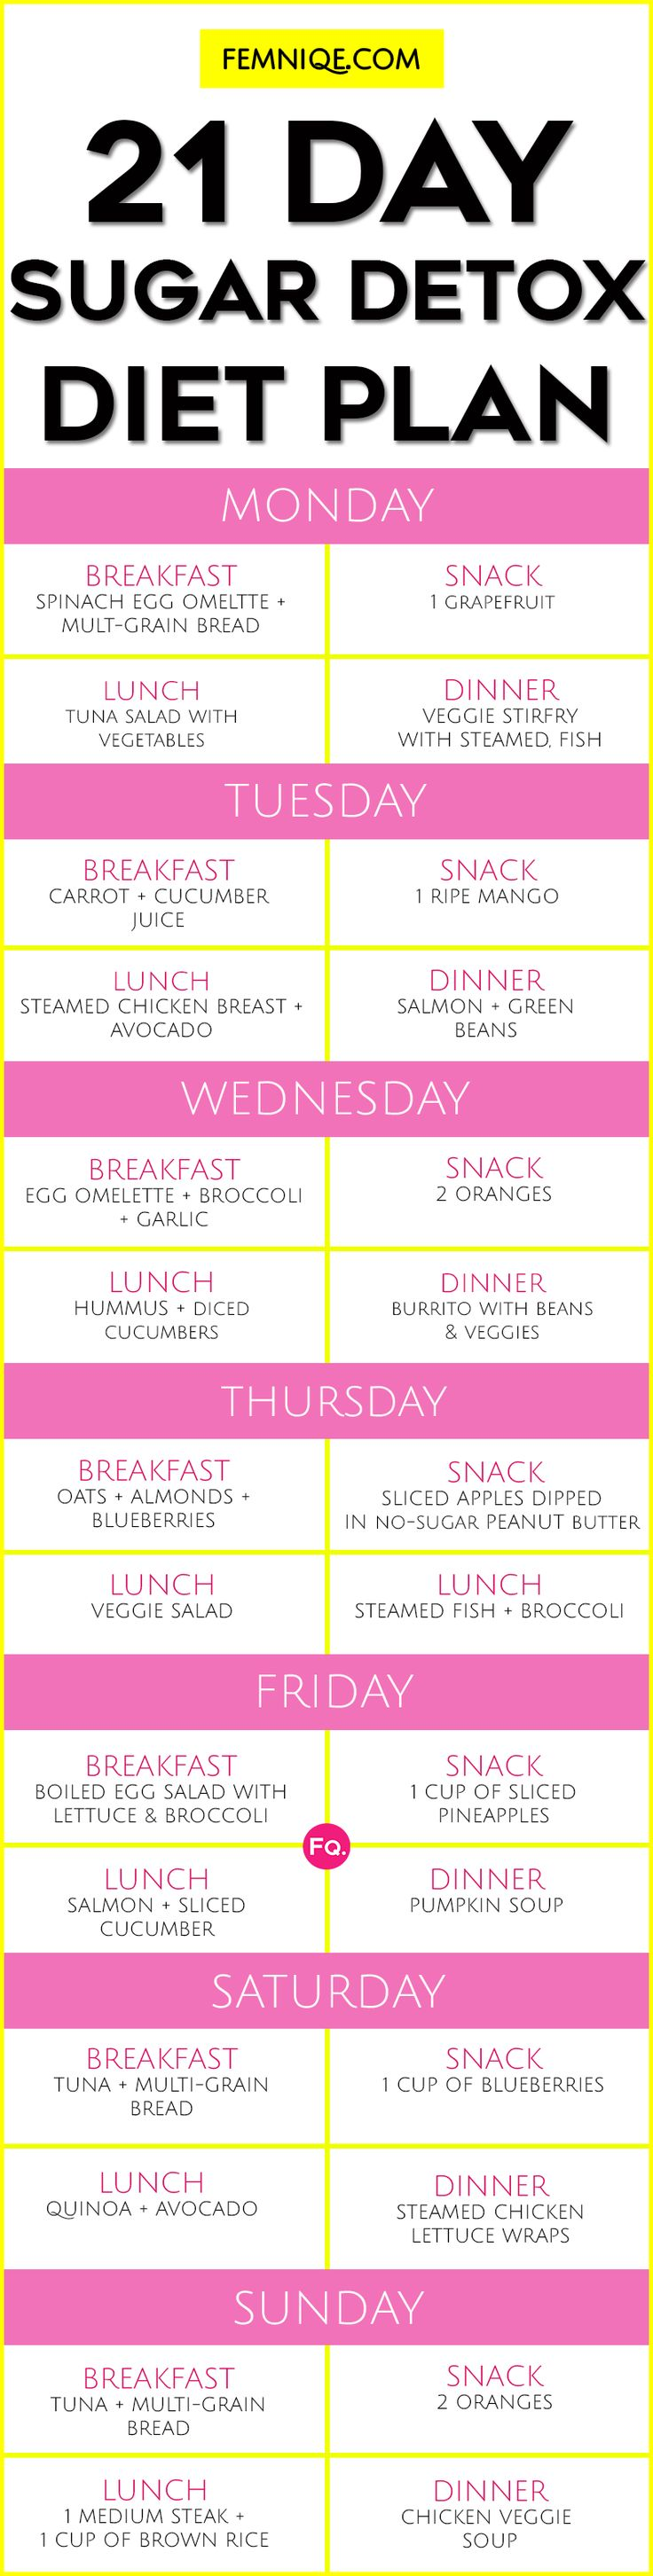 1100 calorie diet with 7 day meal plan